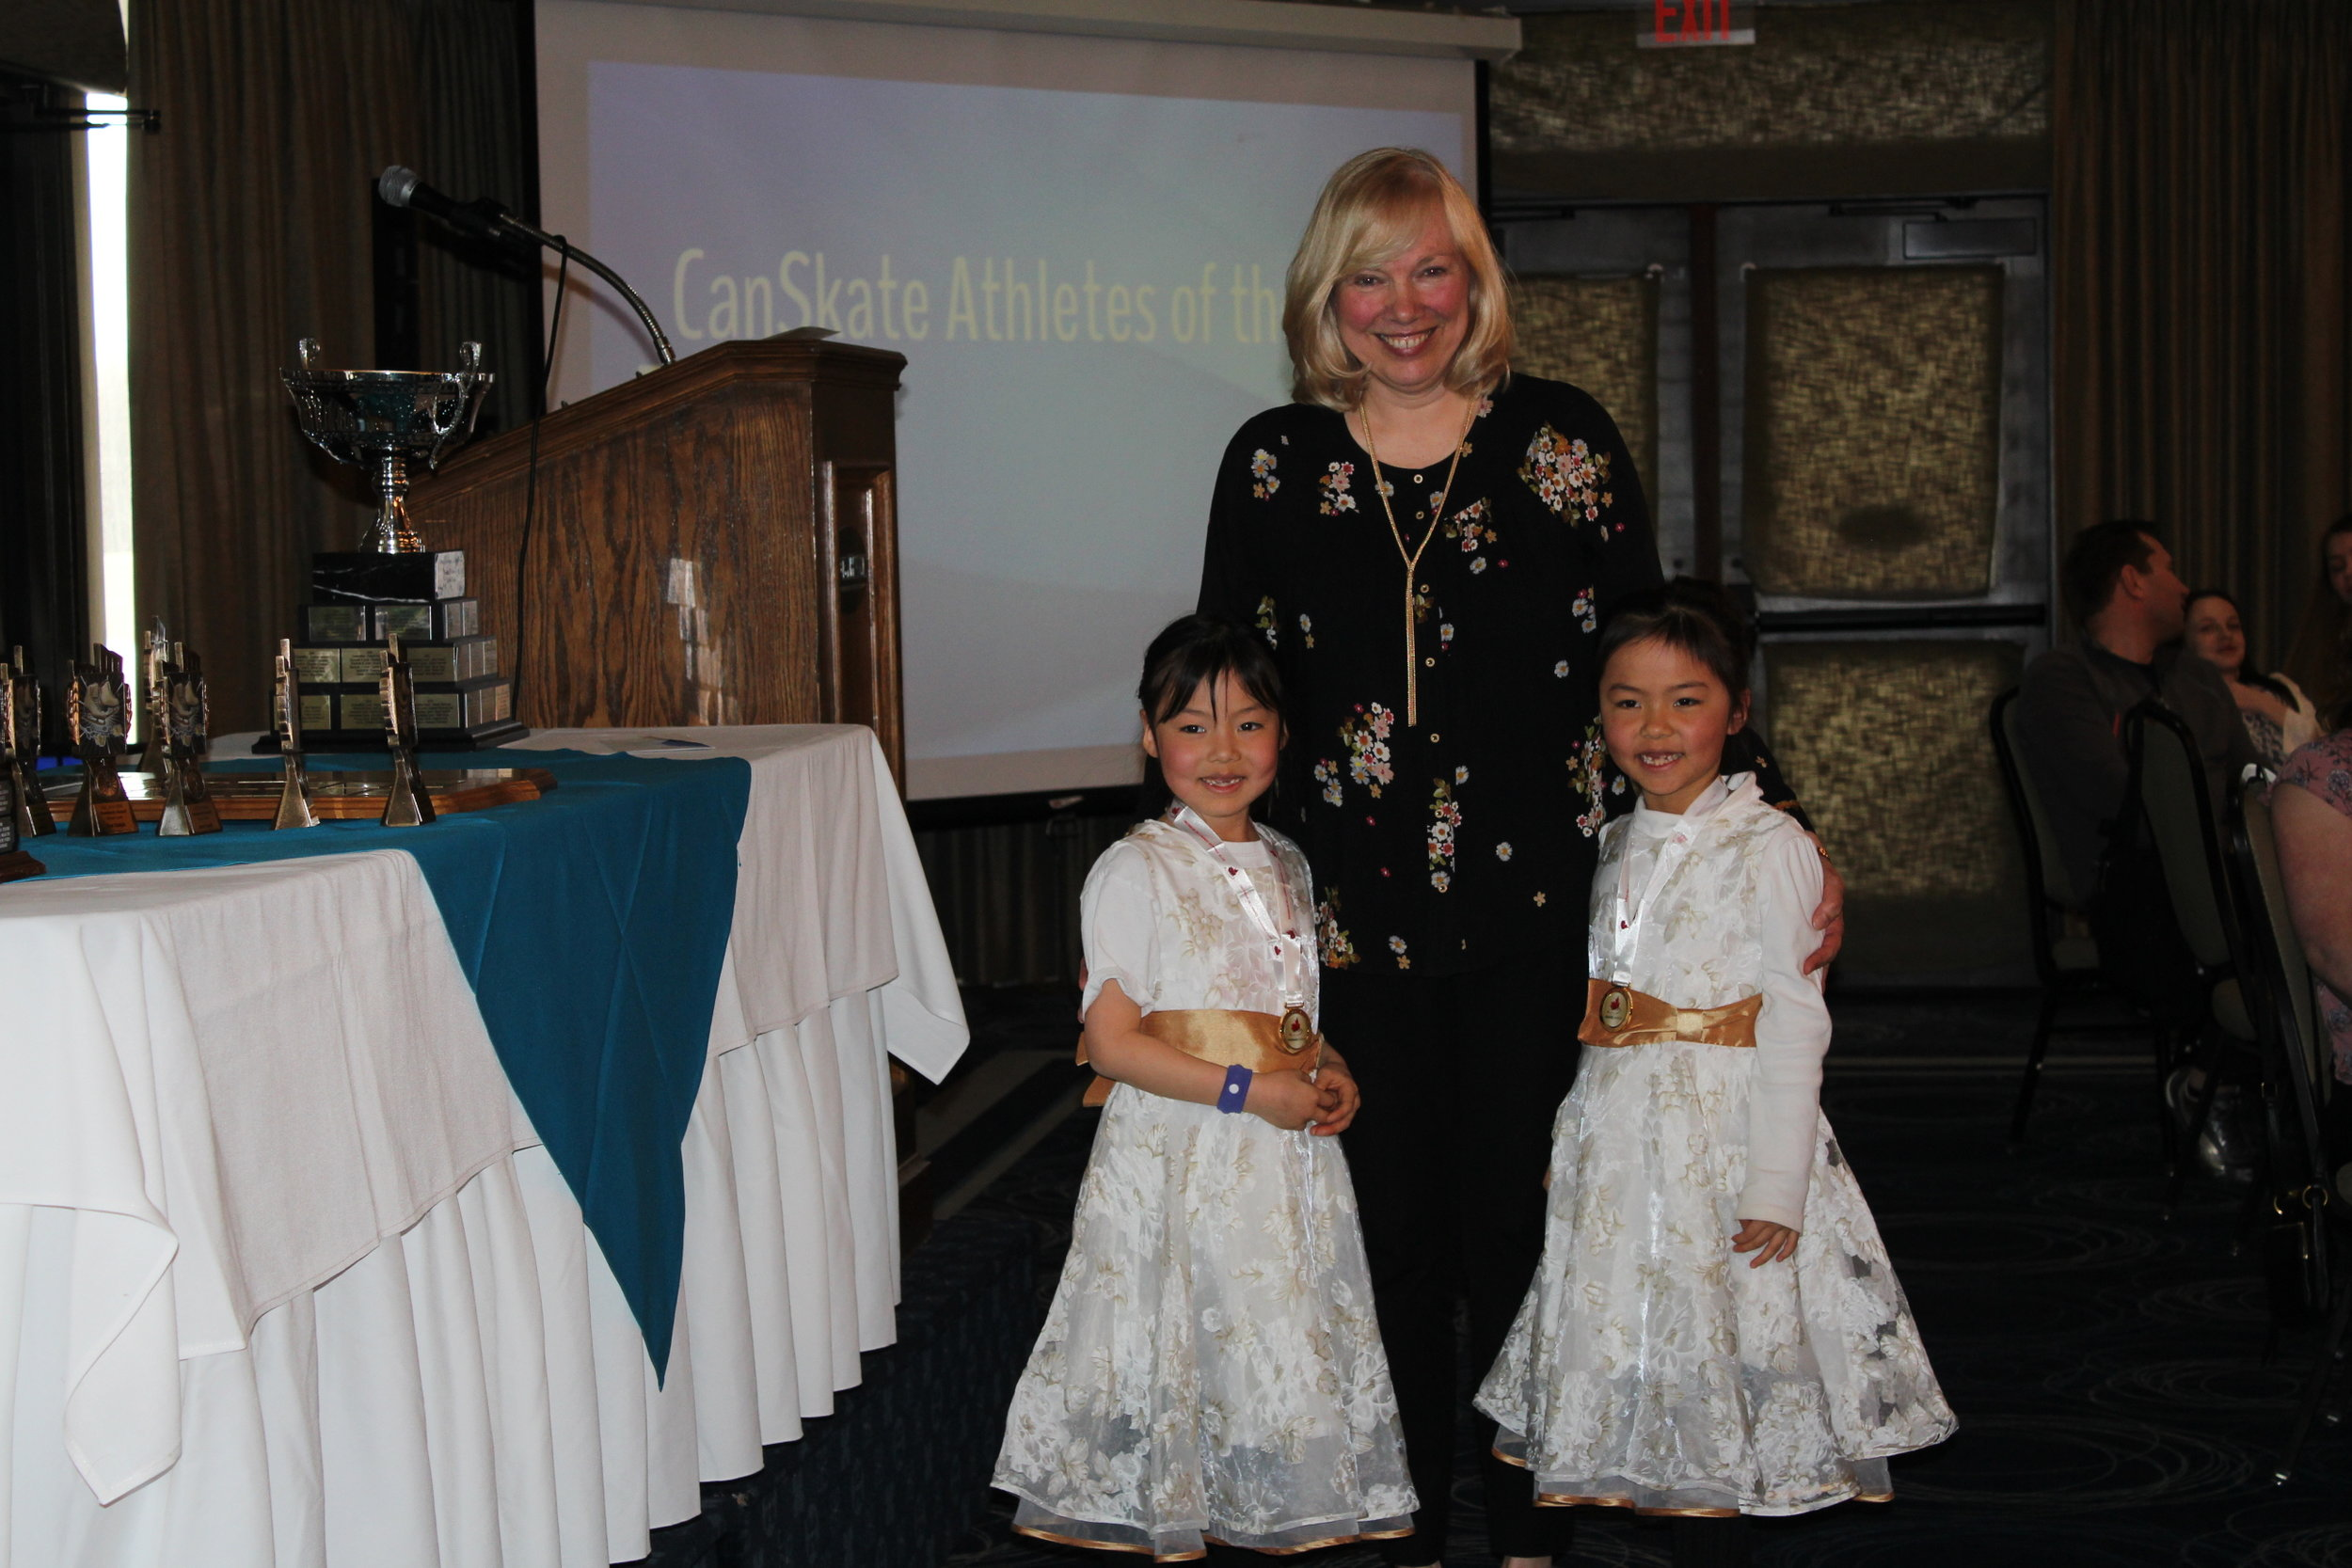 Jenny and Julie receiving their awards from GSC CanSkate Director, Sheilagh McCaskill